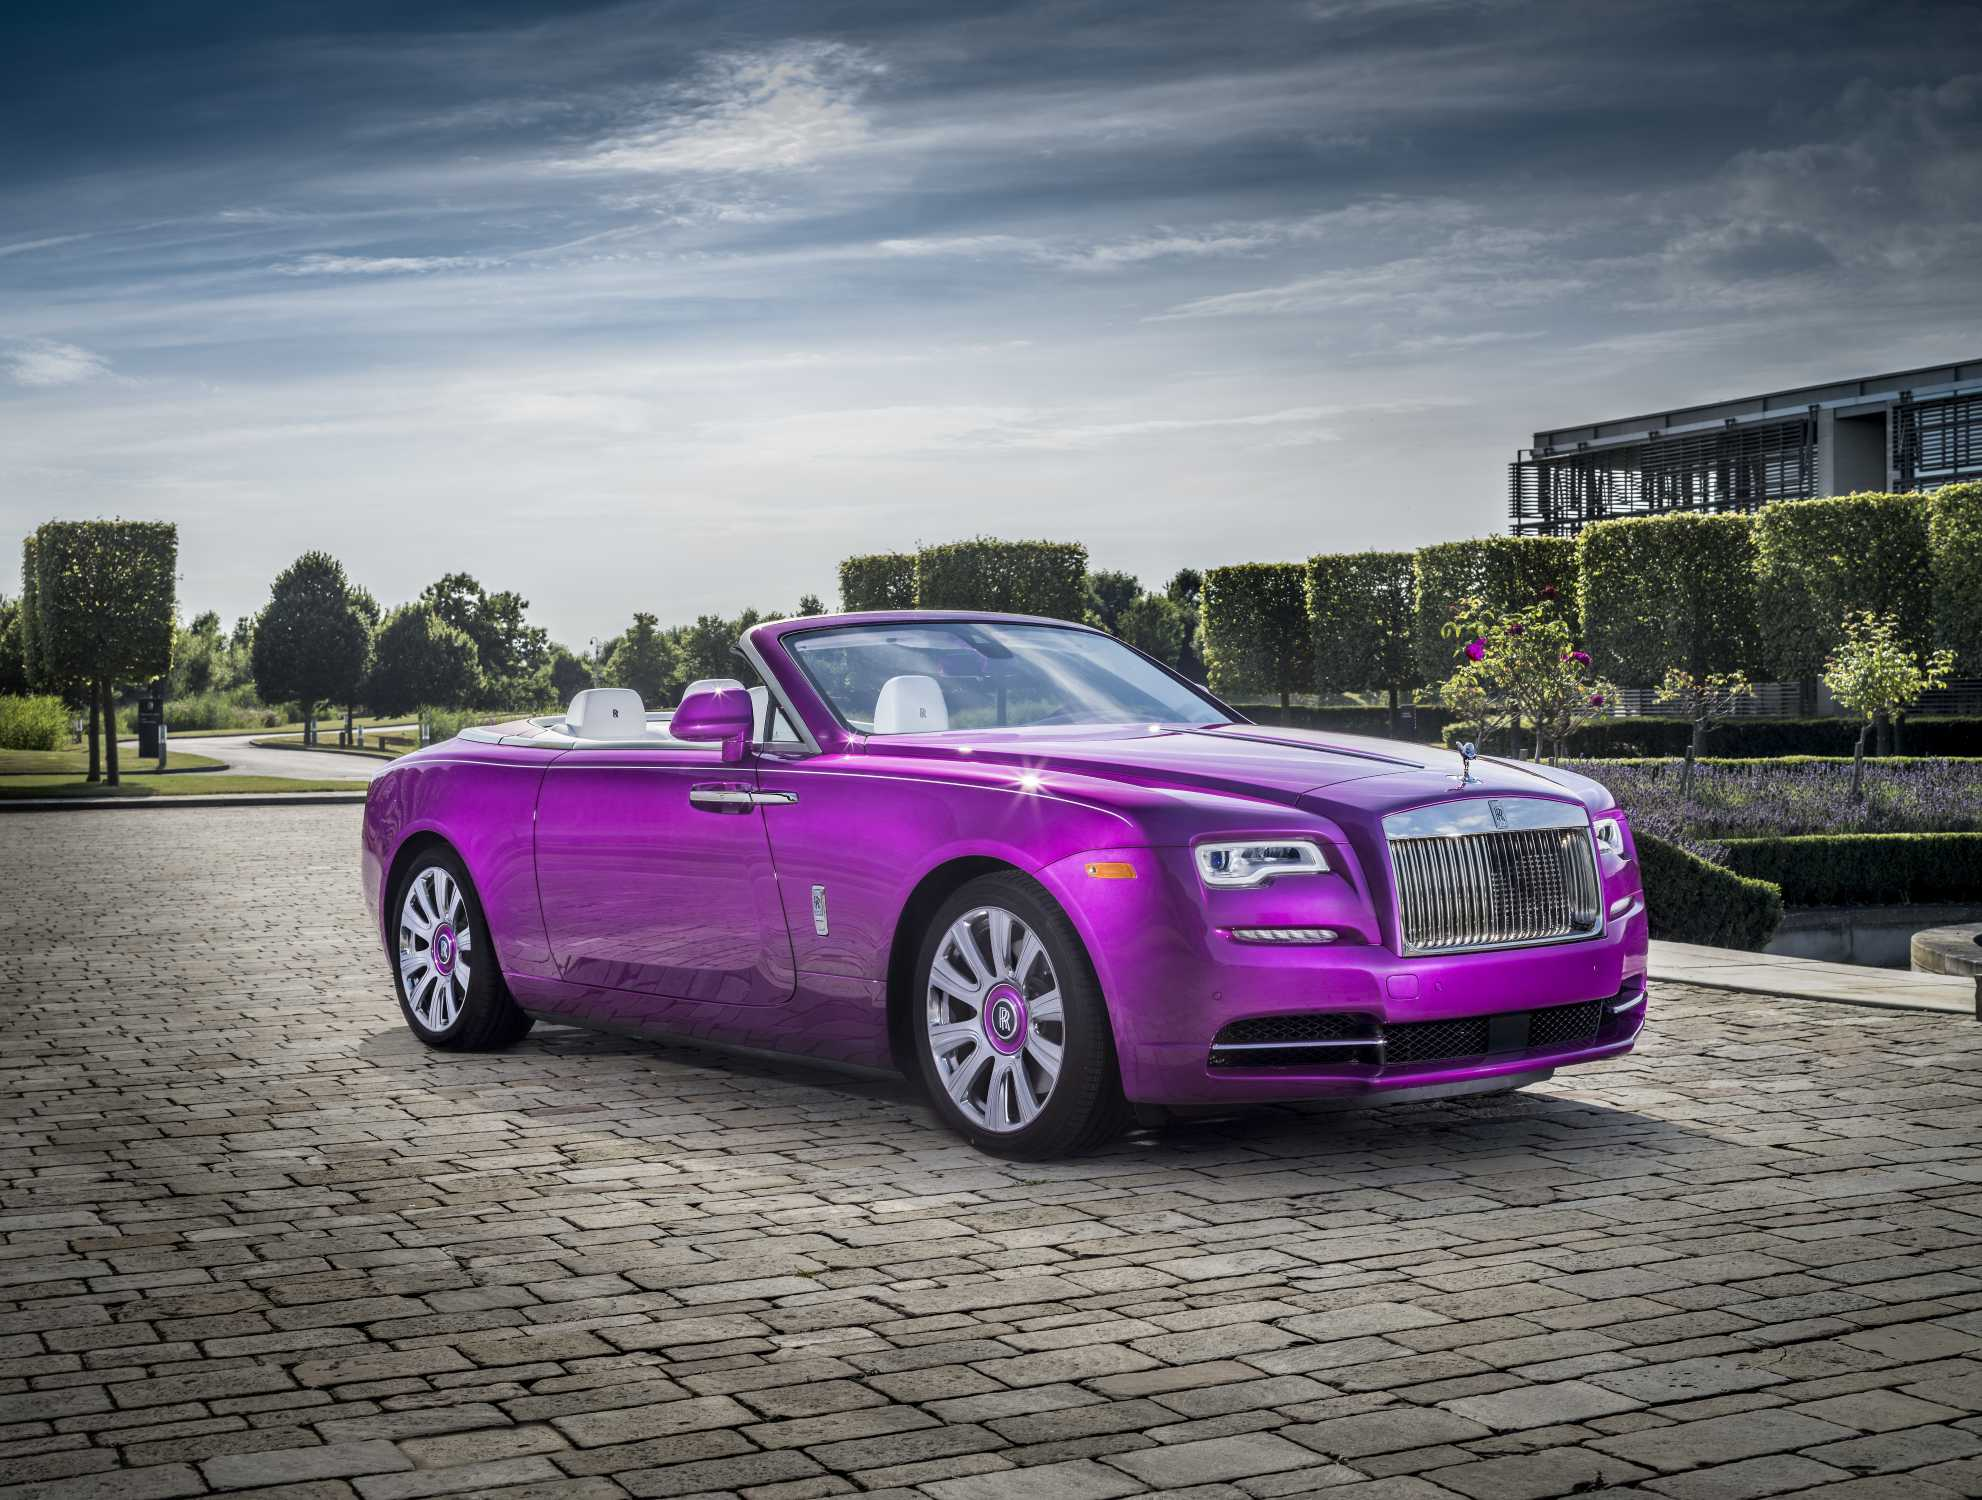 Rolls-Royce Motor Cars Delivers On A Bespoke Color Challenge Stemming From A Beautiful Flower